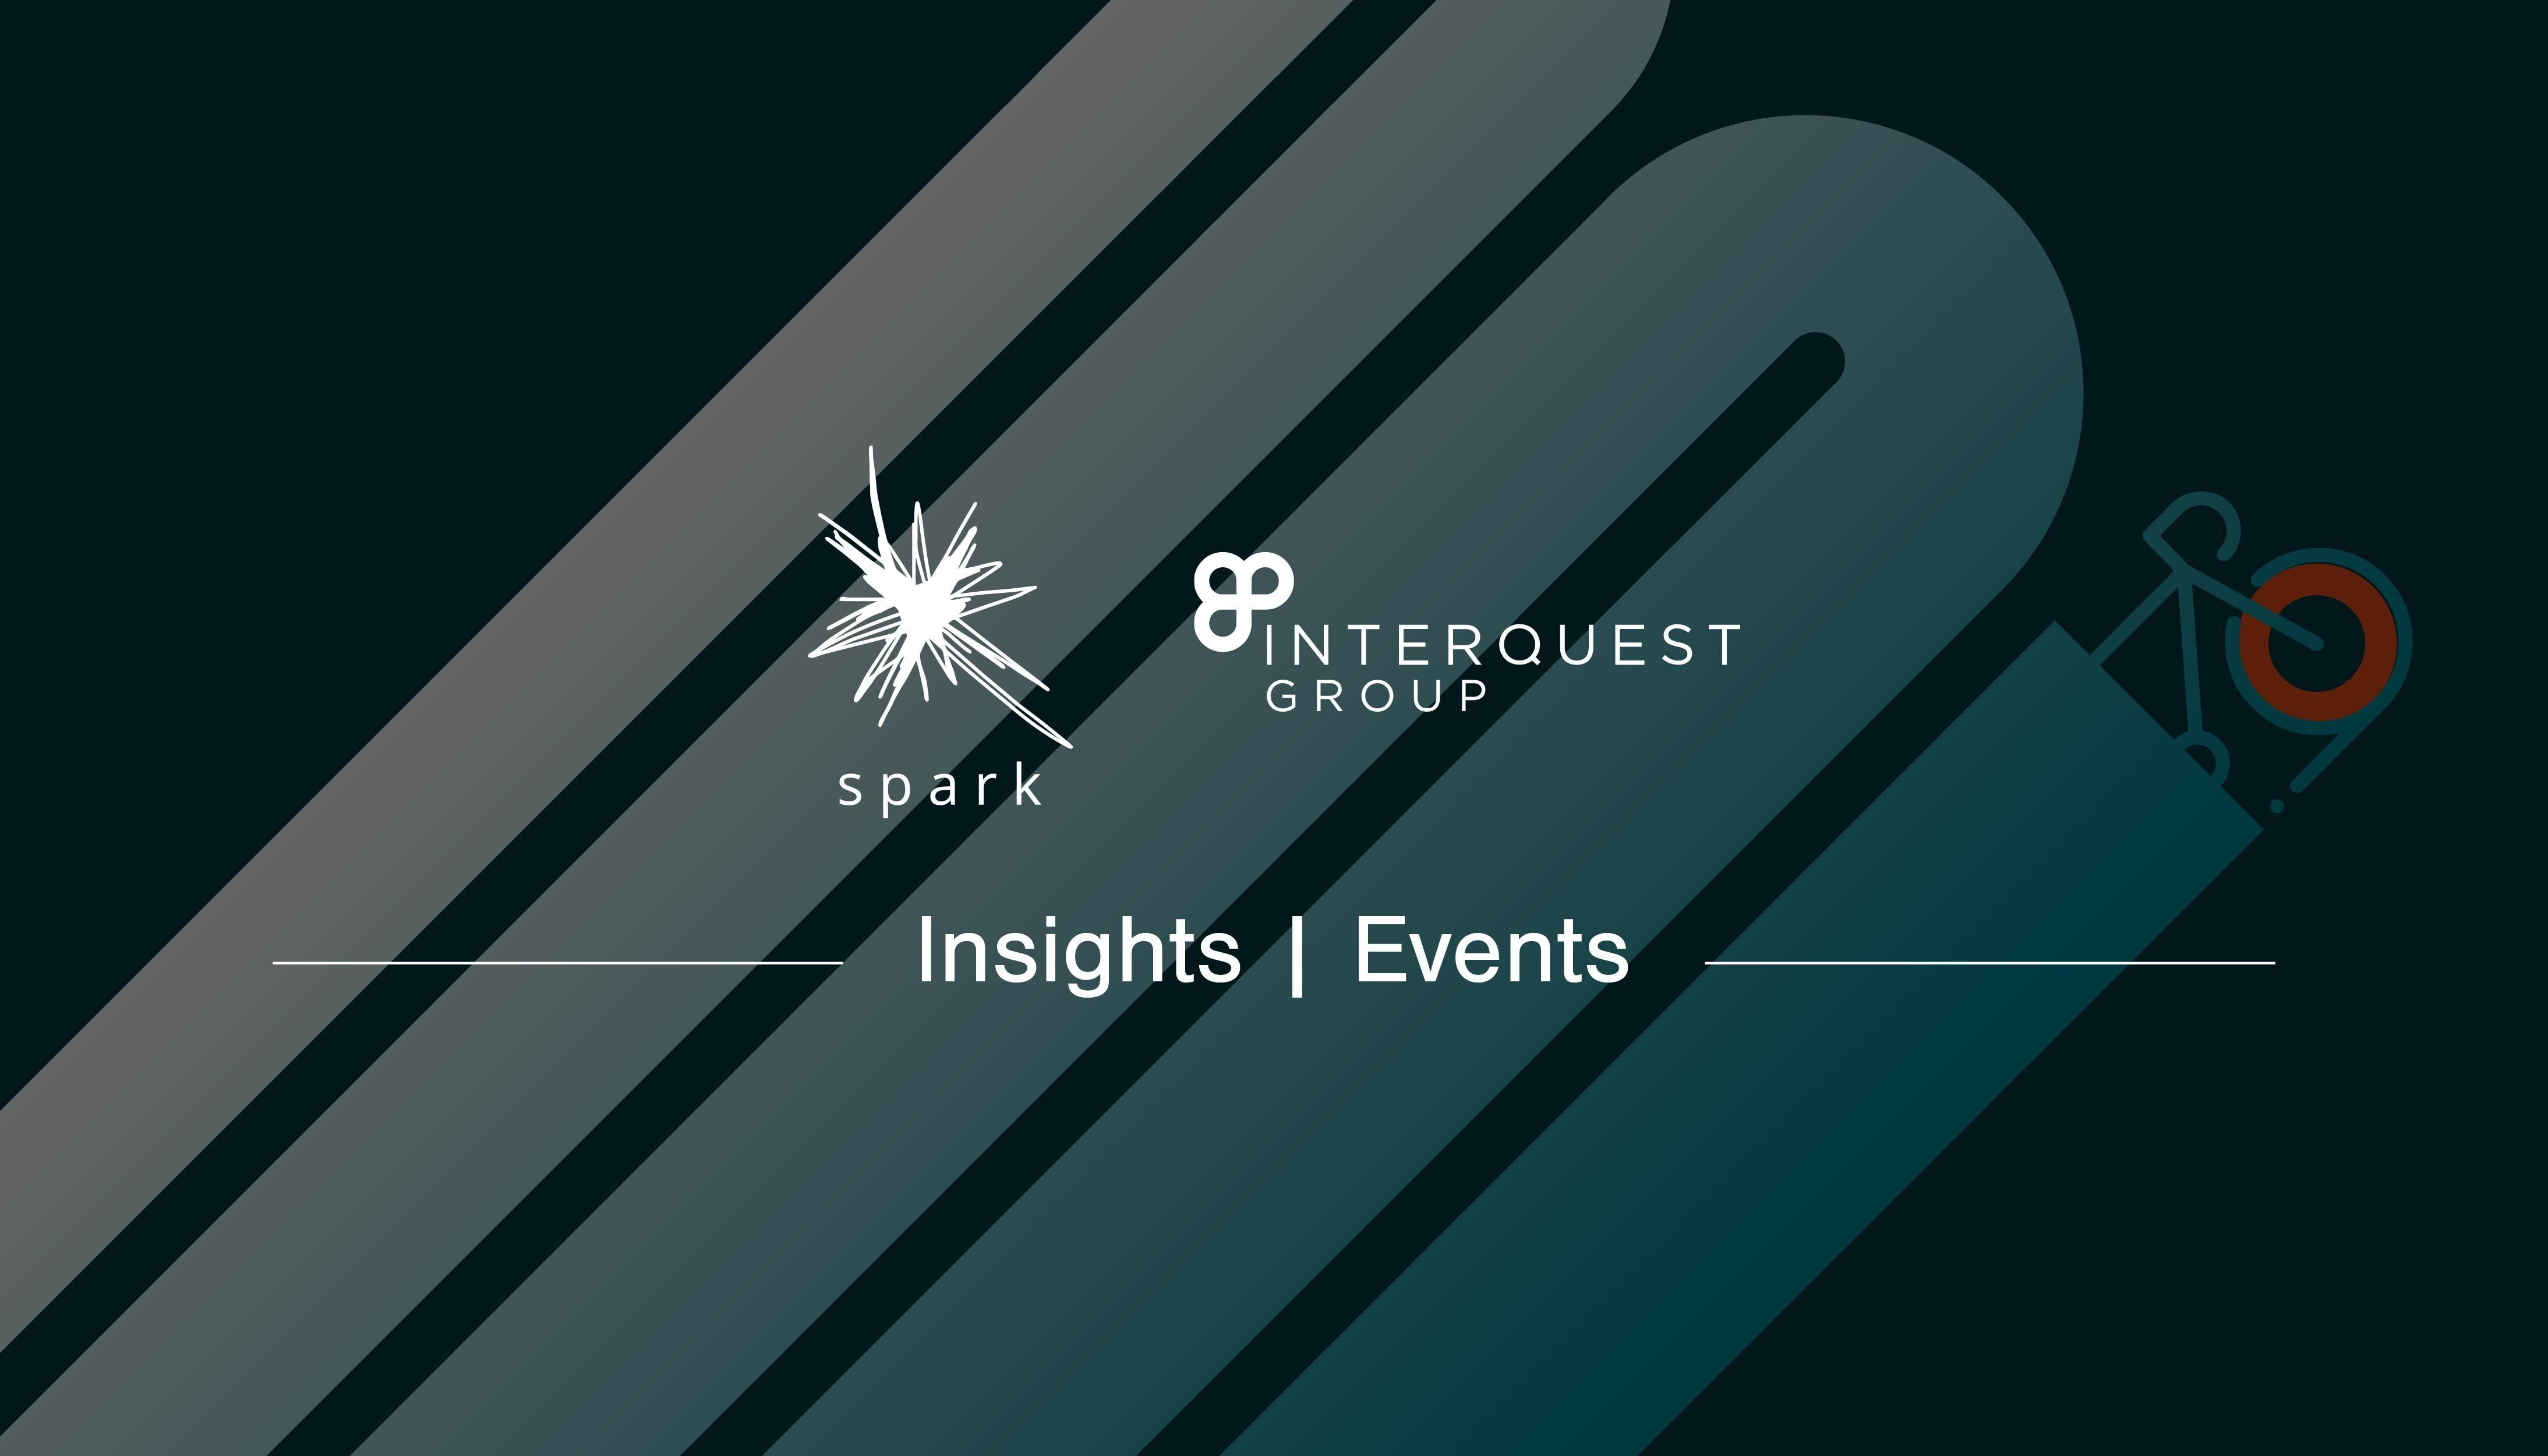 Event blog banner Spark and InterQuest Group logos in white on a graphic of a bicycle painting a route